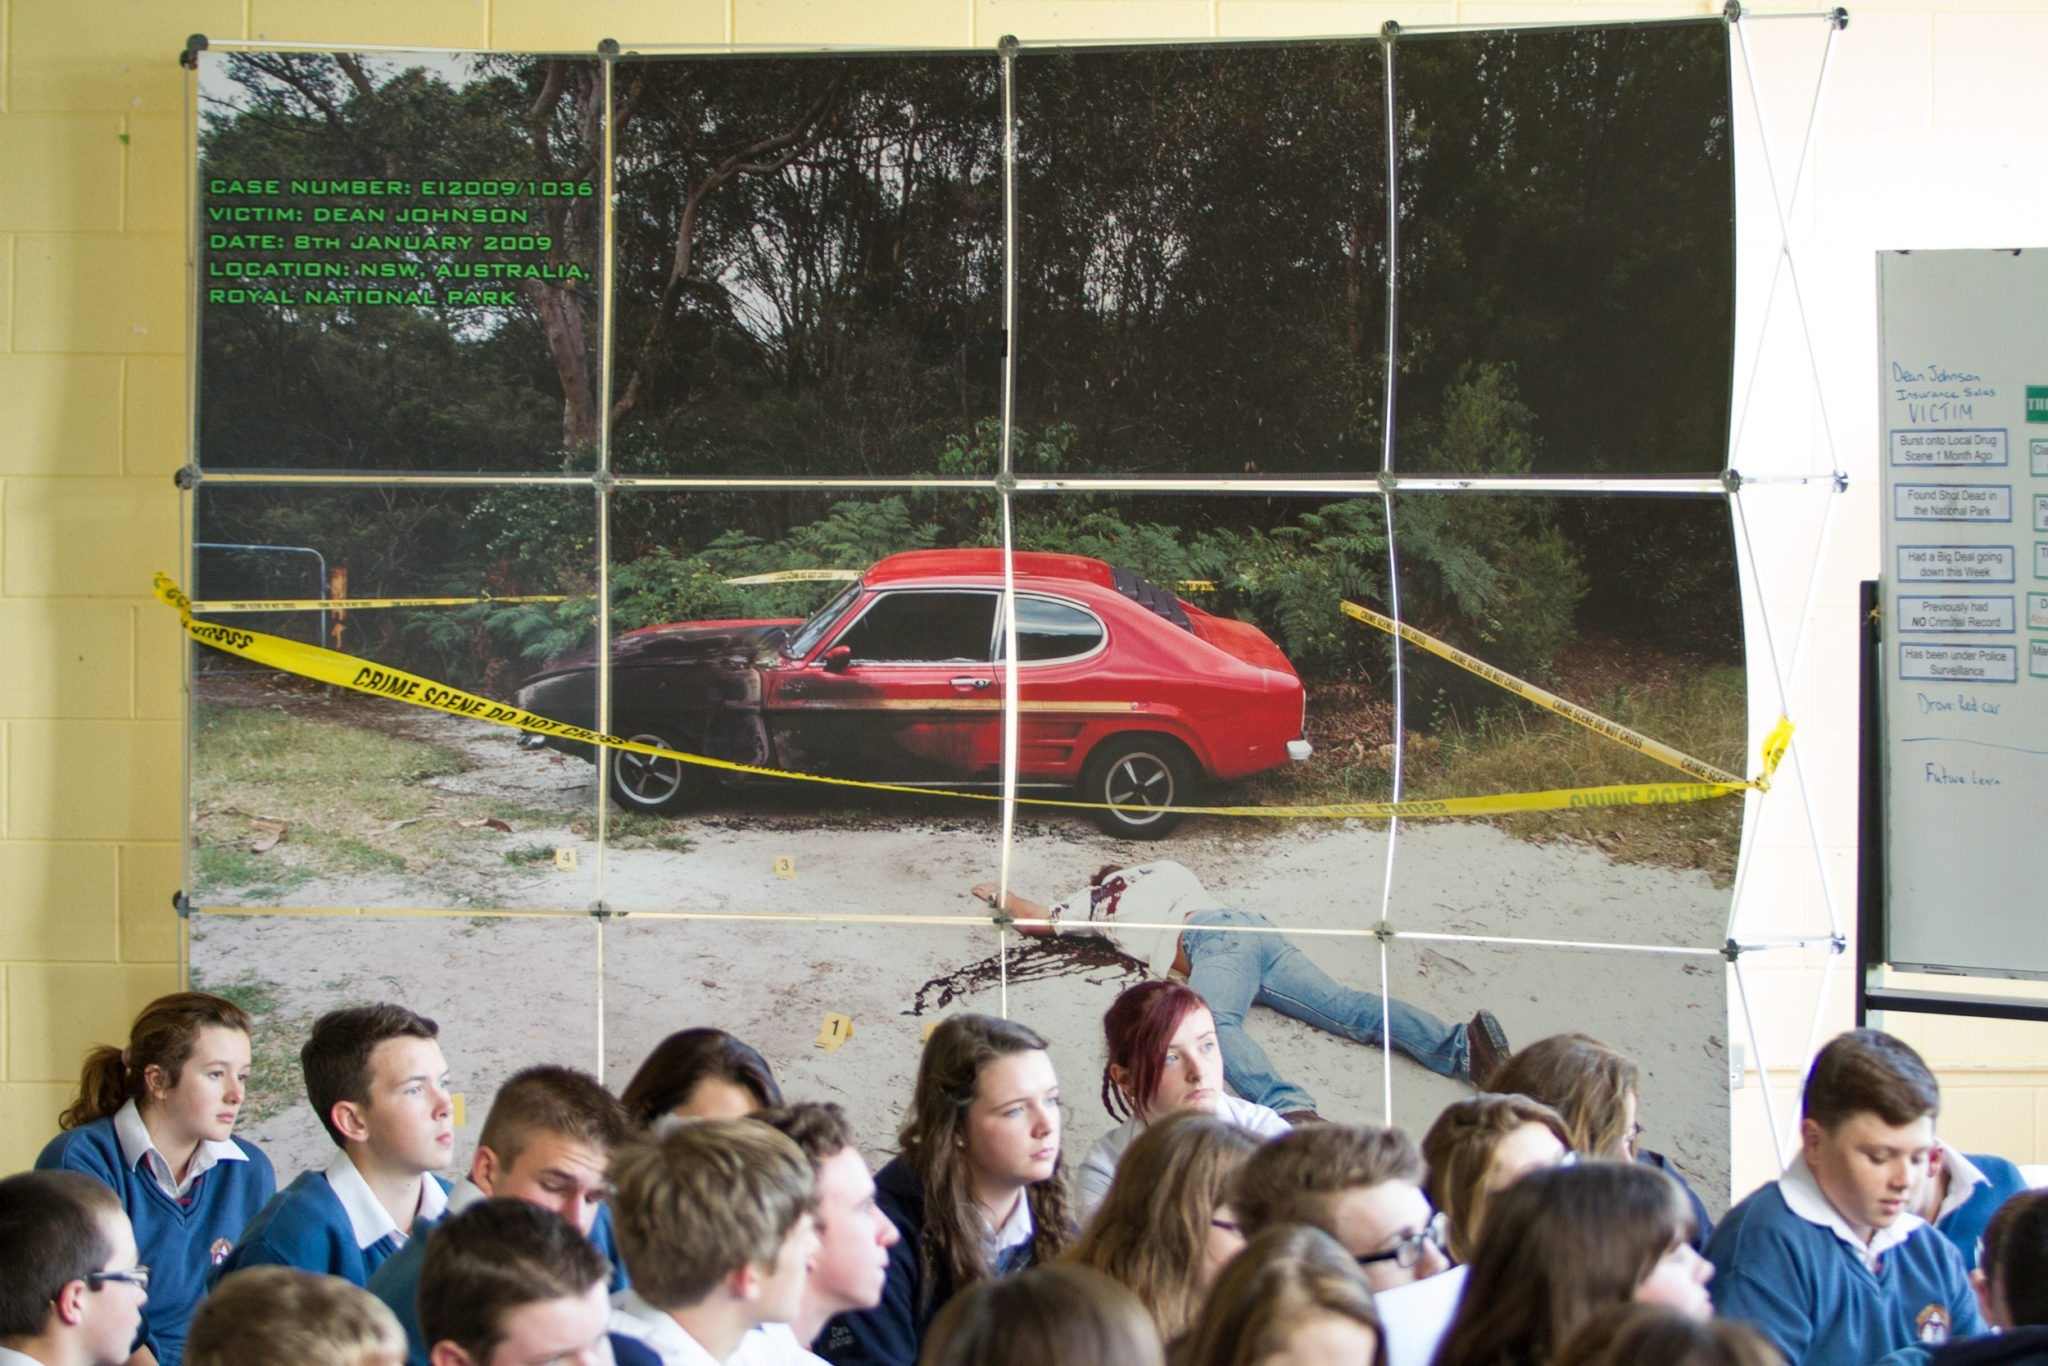 Desmond College Students participating in Forensic Science Day